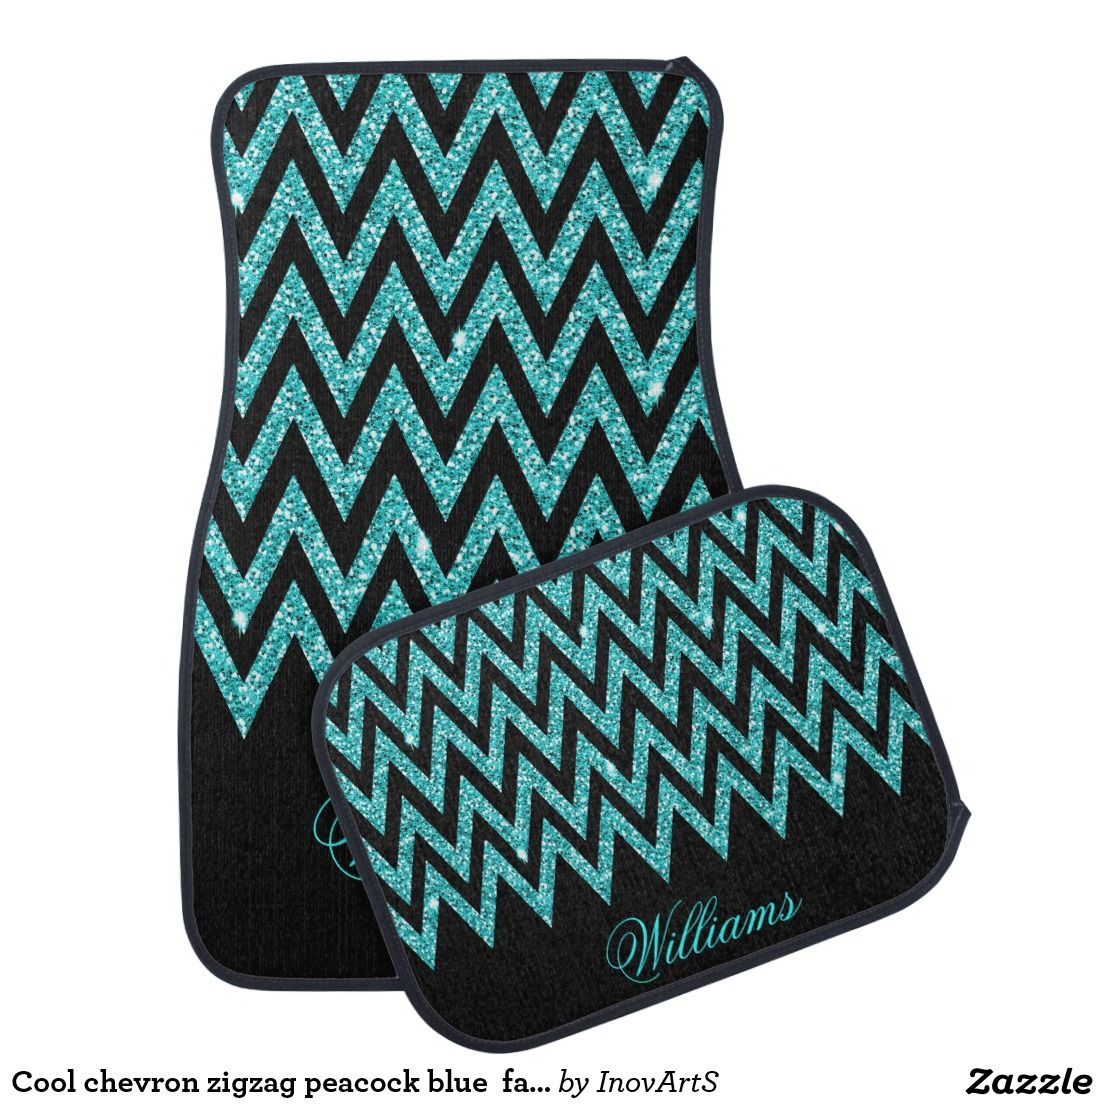 Cool chevron zigzag peacock blue faux glitter car floor mat